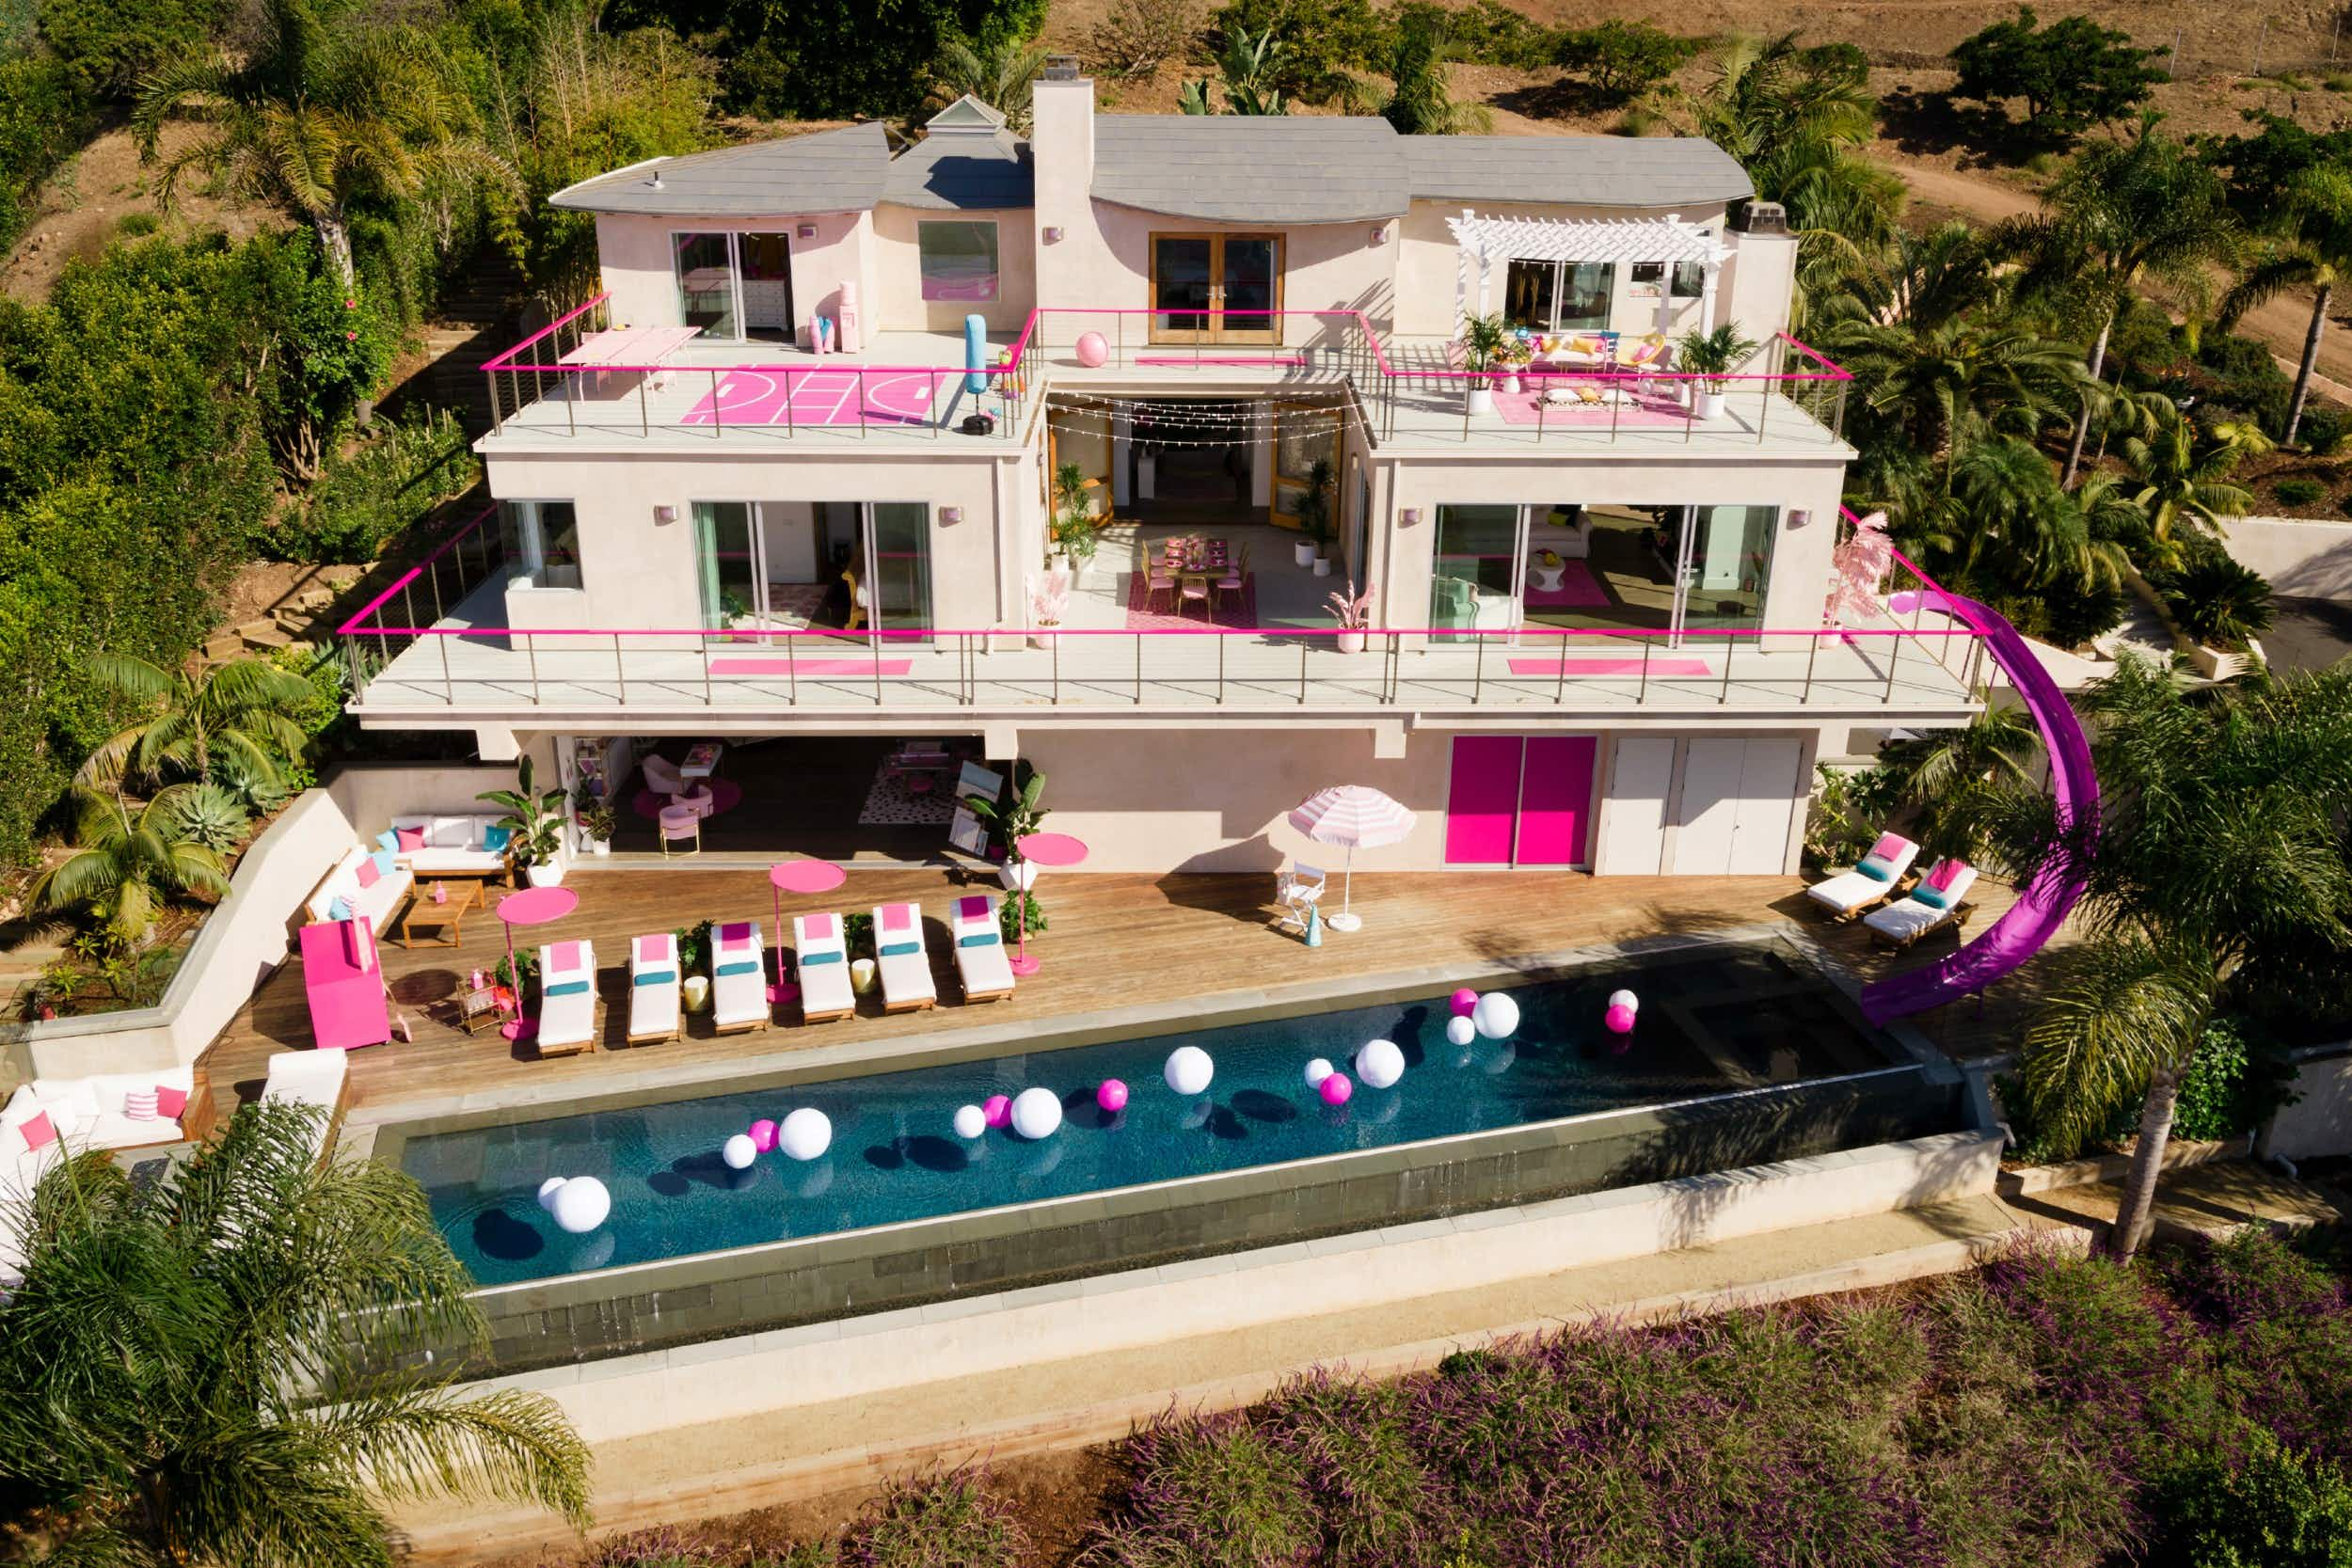 Guests will get to spend two nights in Barbie's Malibu Dreamhouse © Airbnb